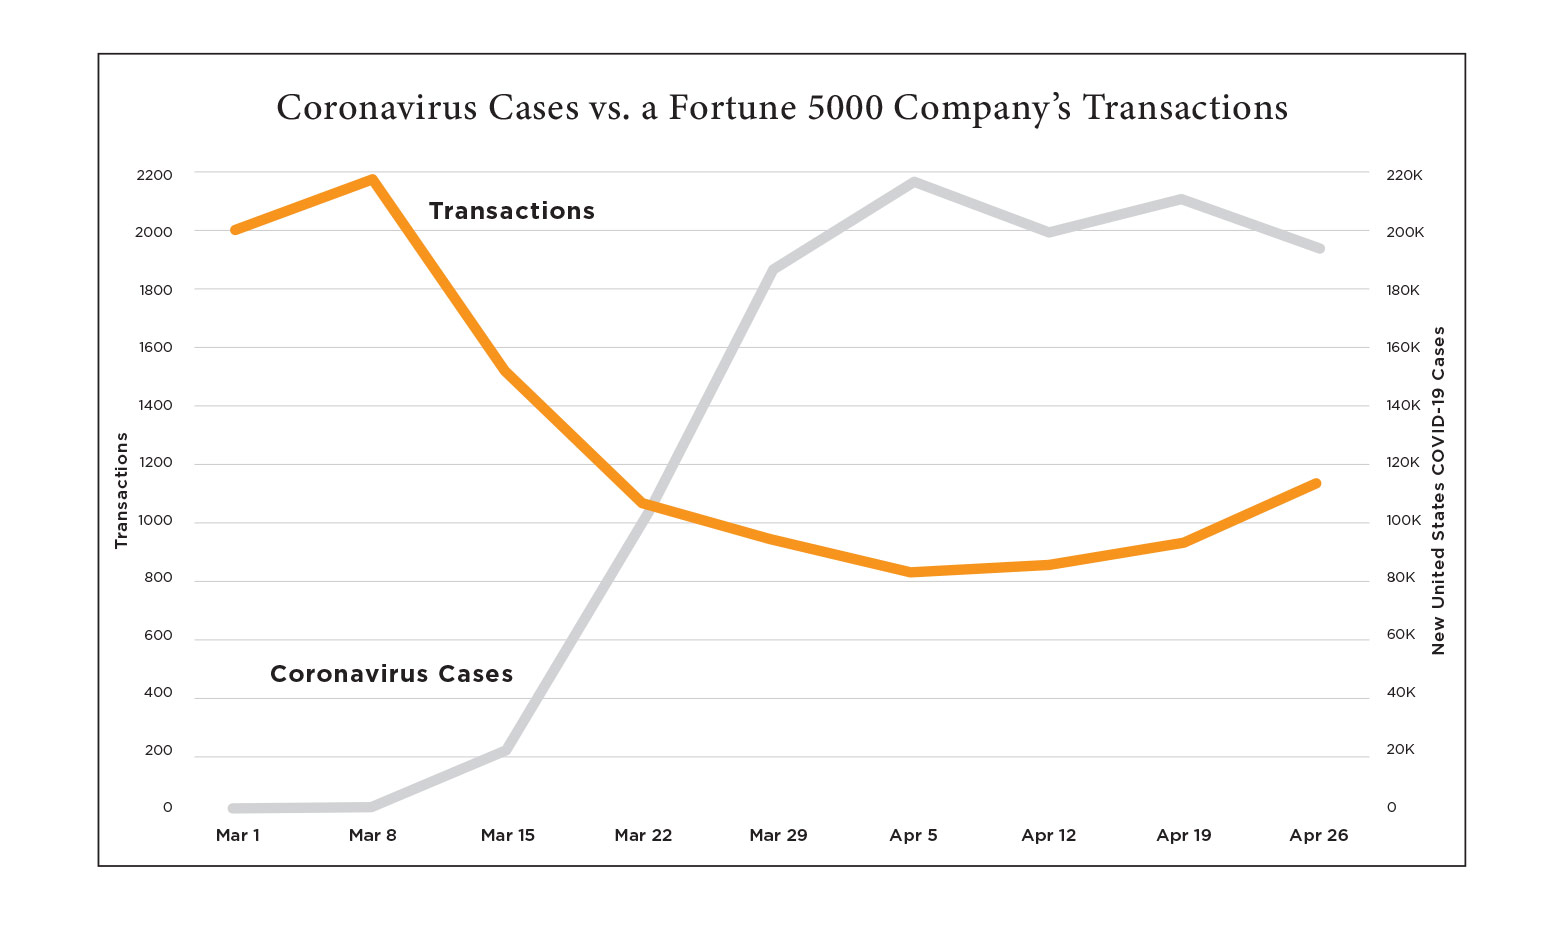 Chart comparing number of COVID-19 Cases to Transaction numbers at a Fortune 5000 company